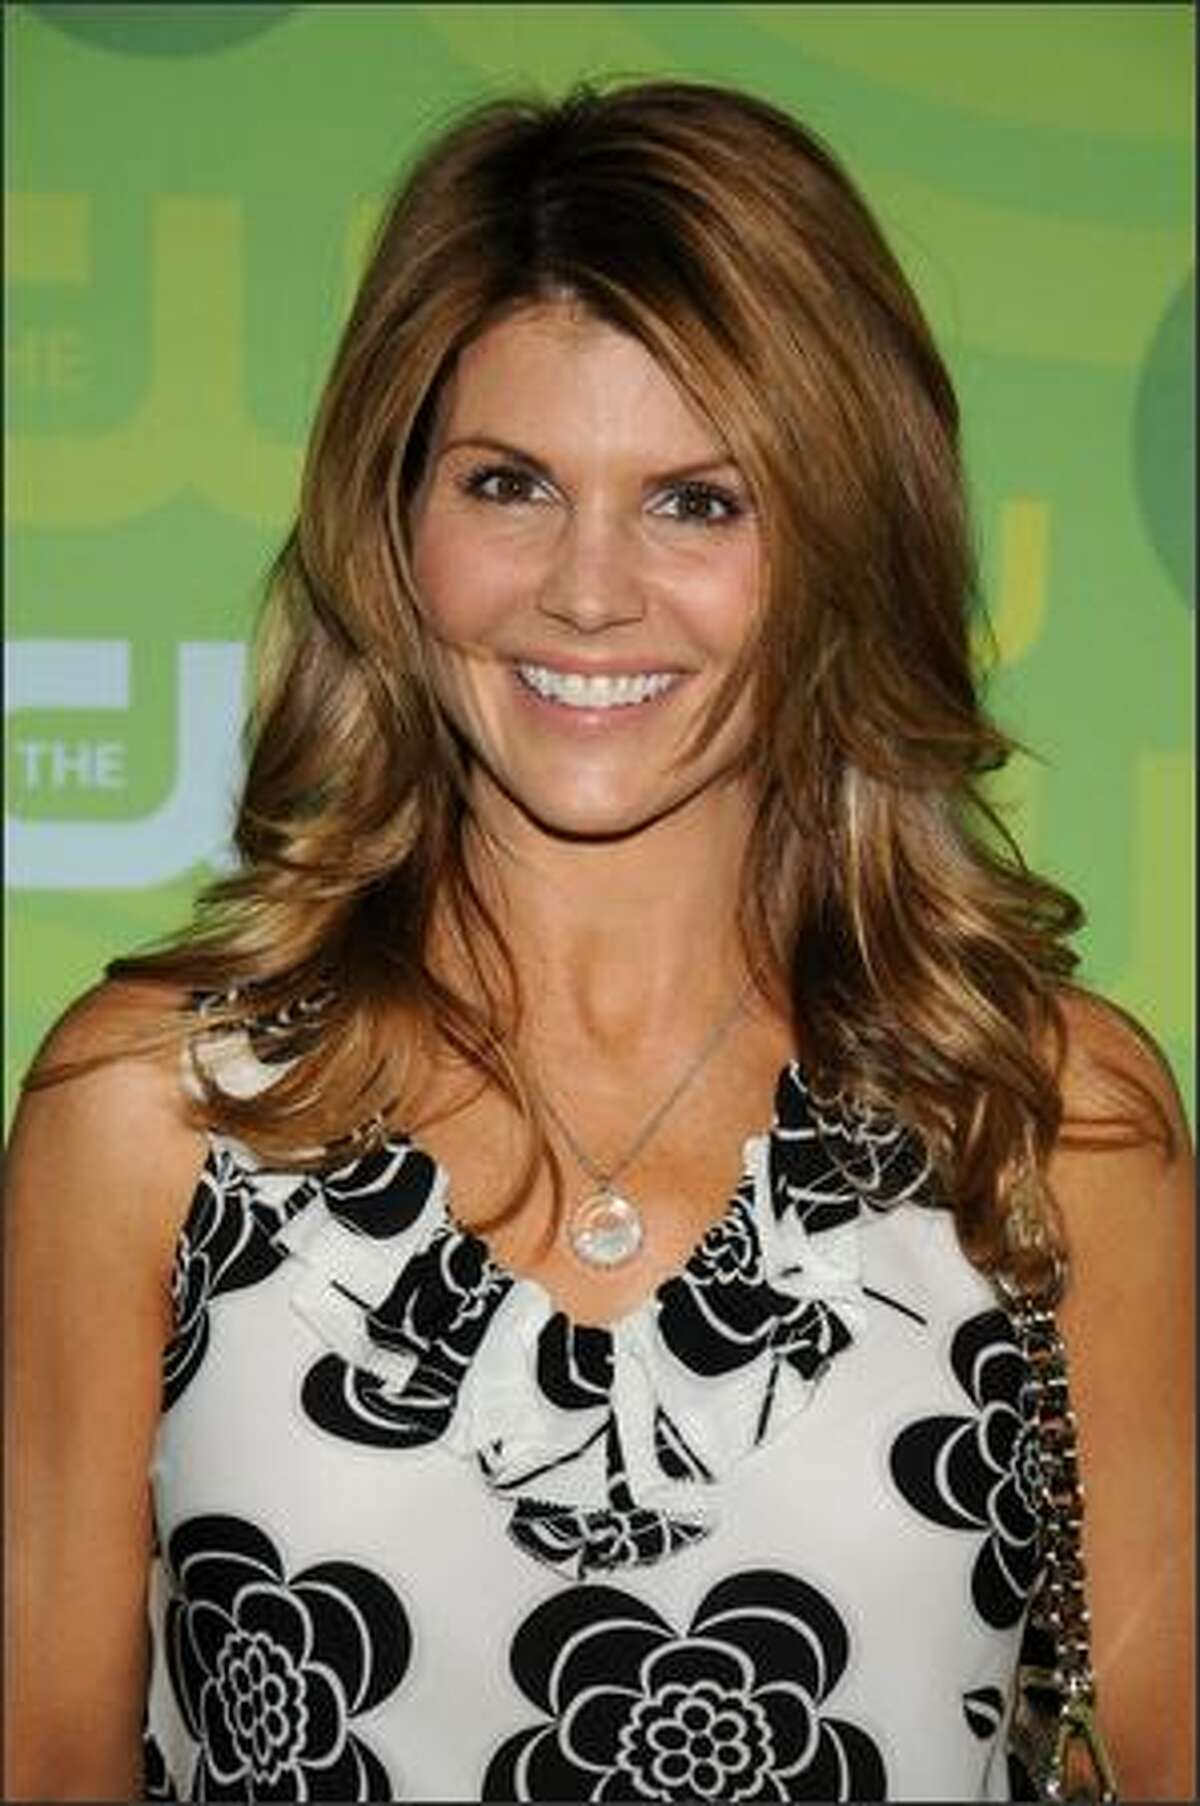 Actress Lori Loughlin arrives at the CW Network's Upfront at Lincoln Center on Tuesday in New York City.